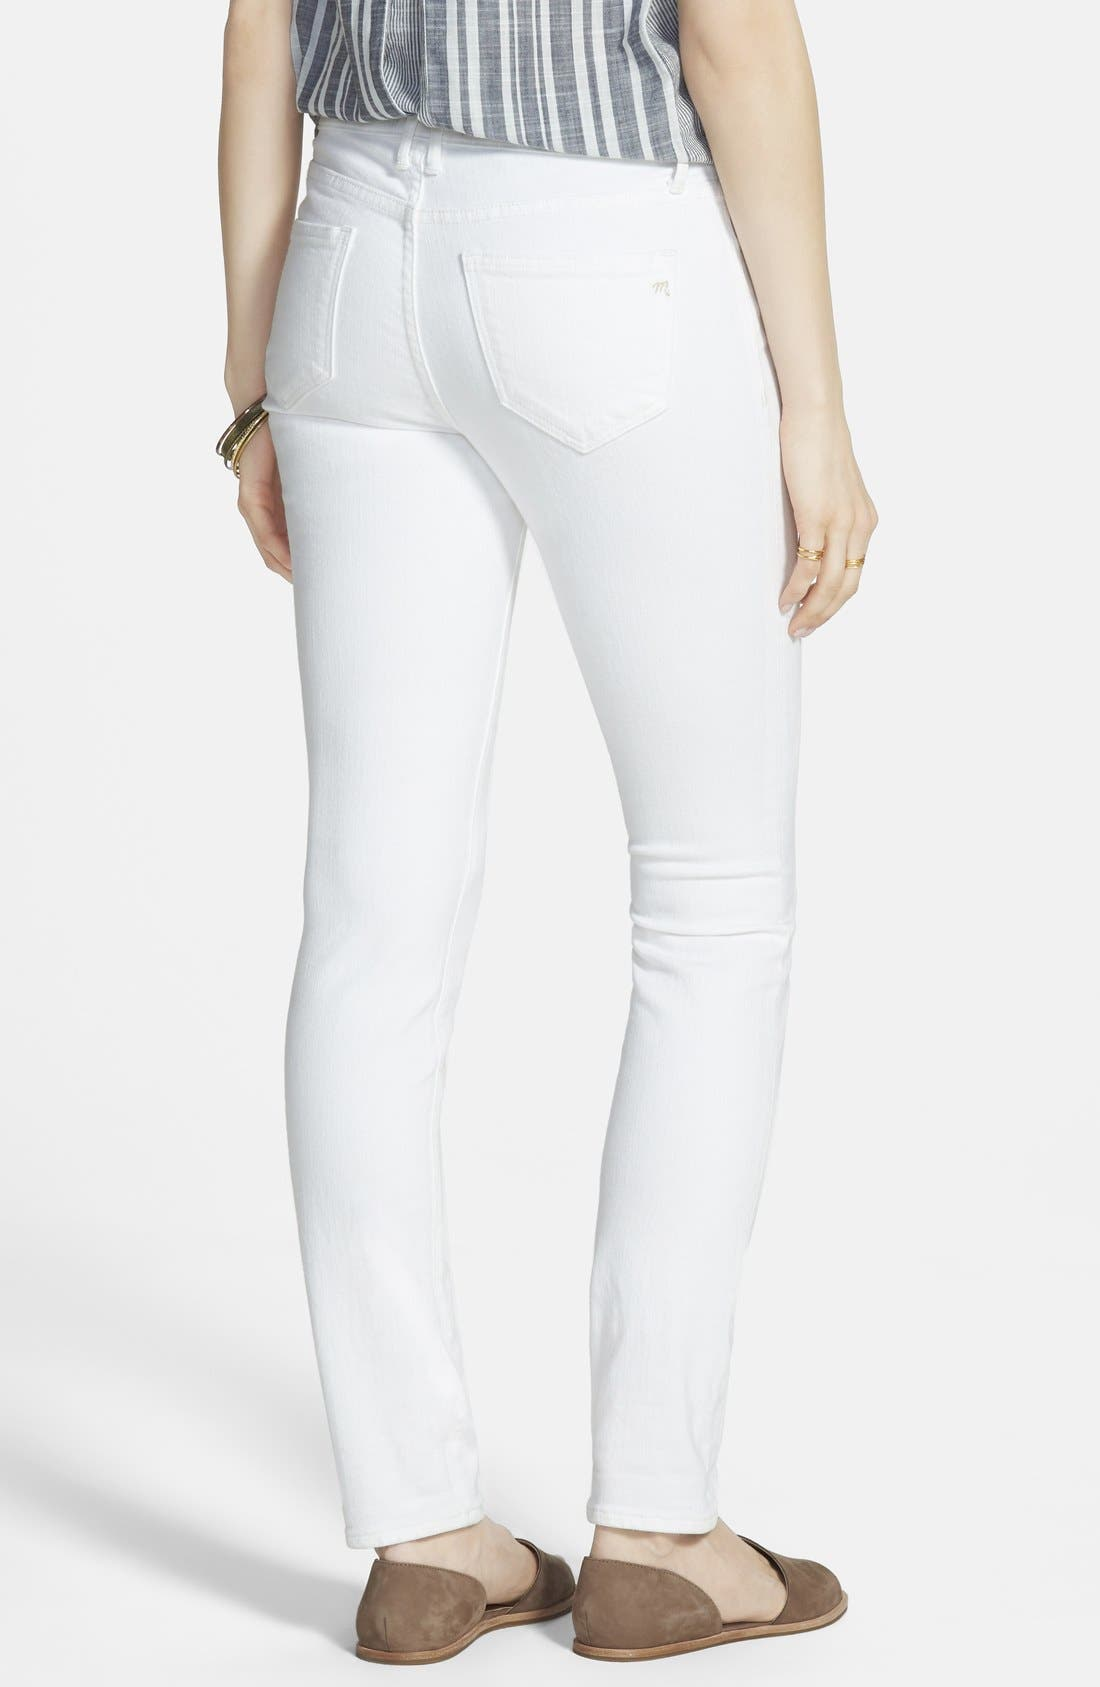 MADEWELL,                             9-Inch High-Rise Skinny Jeans,                             Alternate thumbnail 4, color,                             100